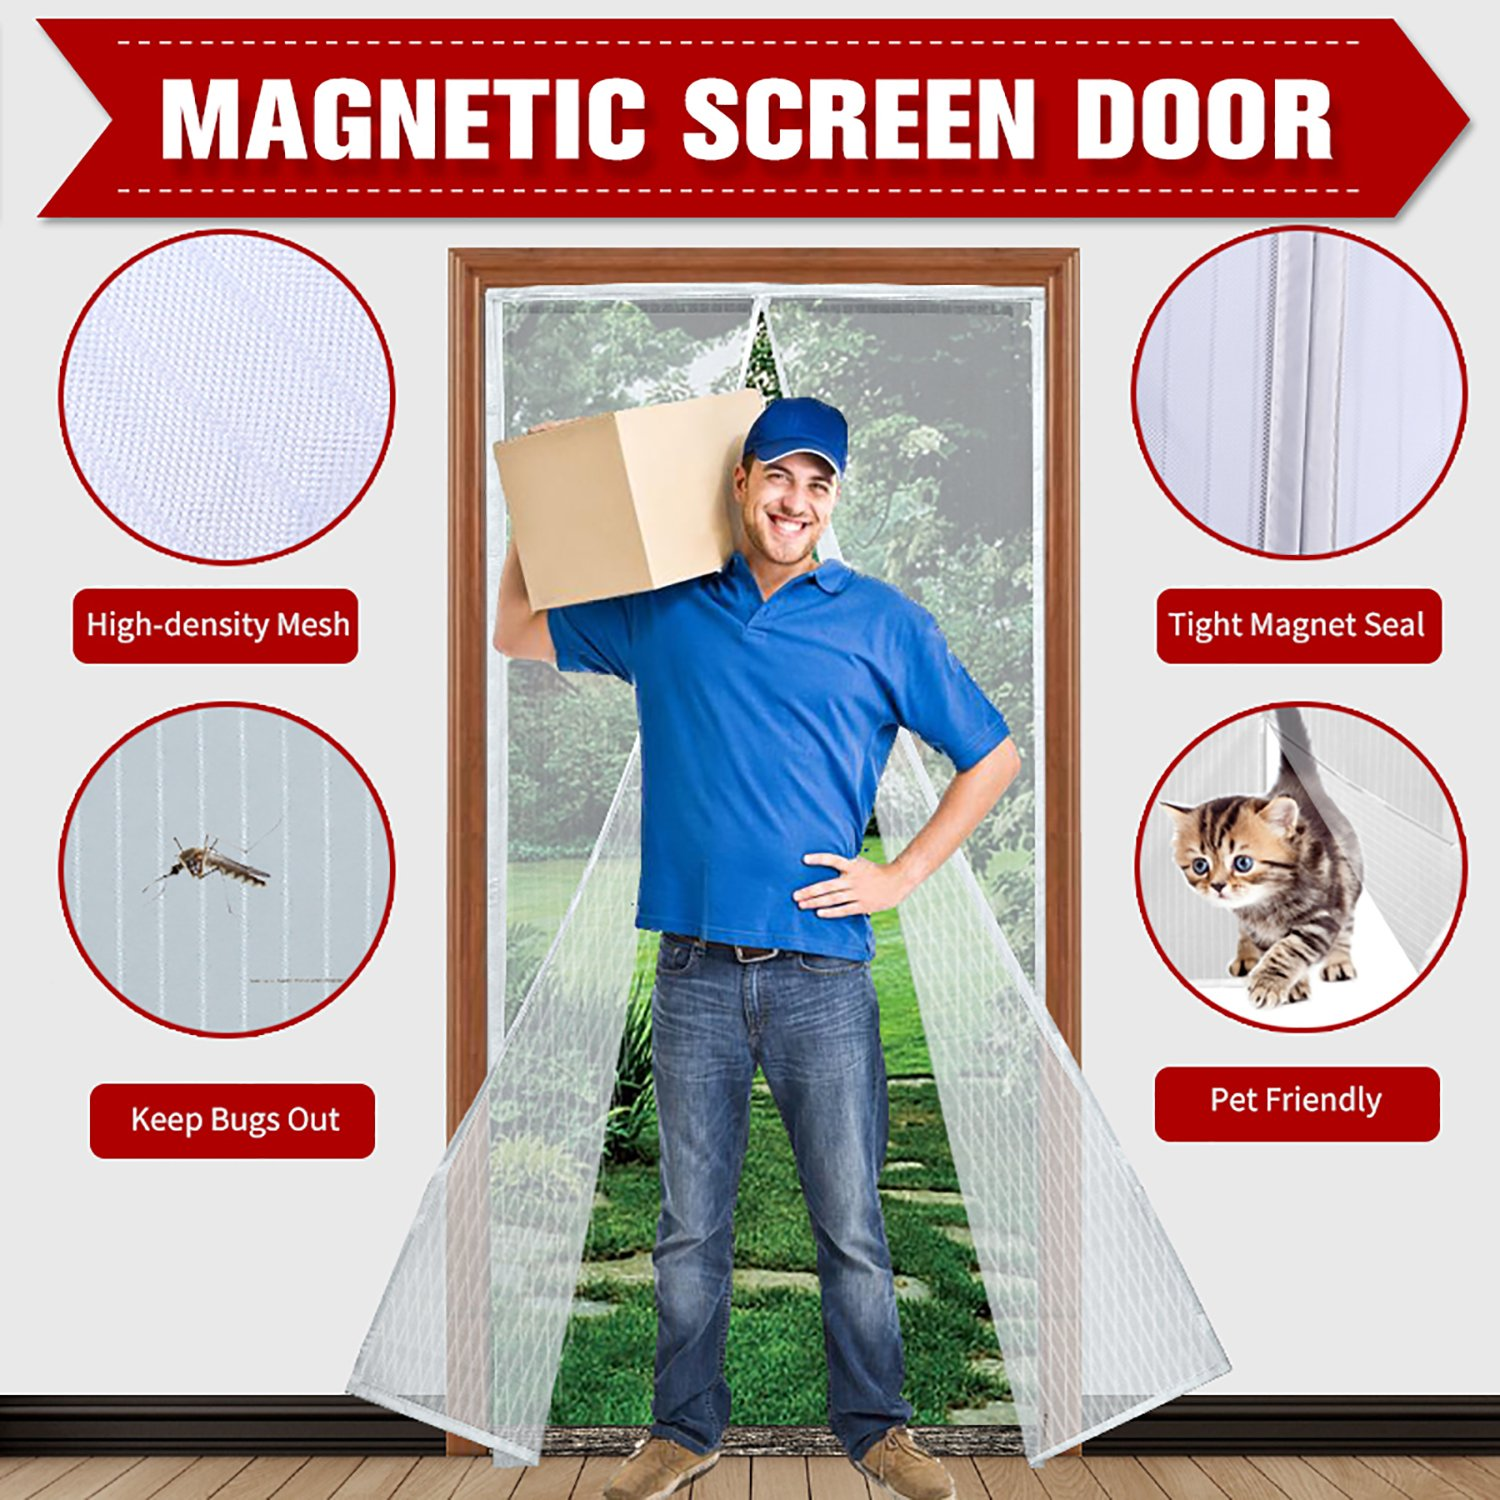 """Magnetic Screen Door 39""""x 83"""" with Heavy Duty Reinforced Mesh Curtain and Full Frame Velcro, Fits Door Size up to 36''X82'' Max- White by PhoenixReal"""